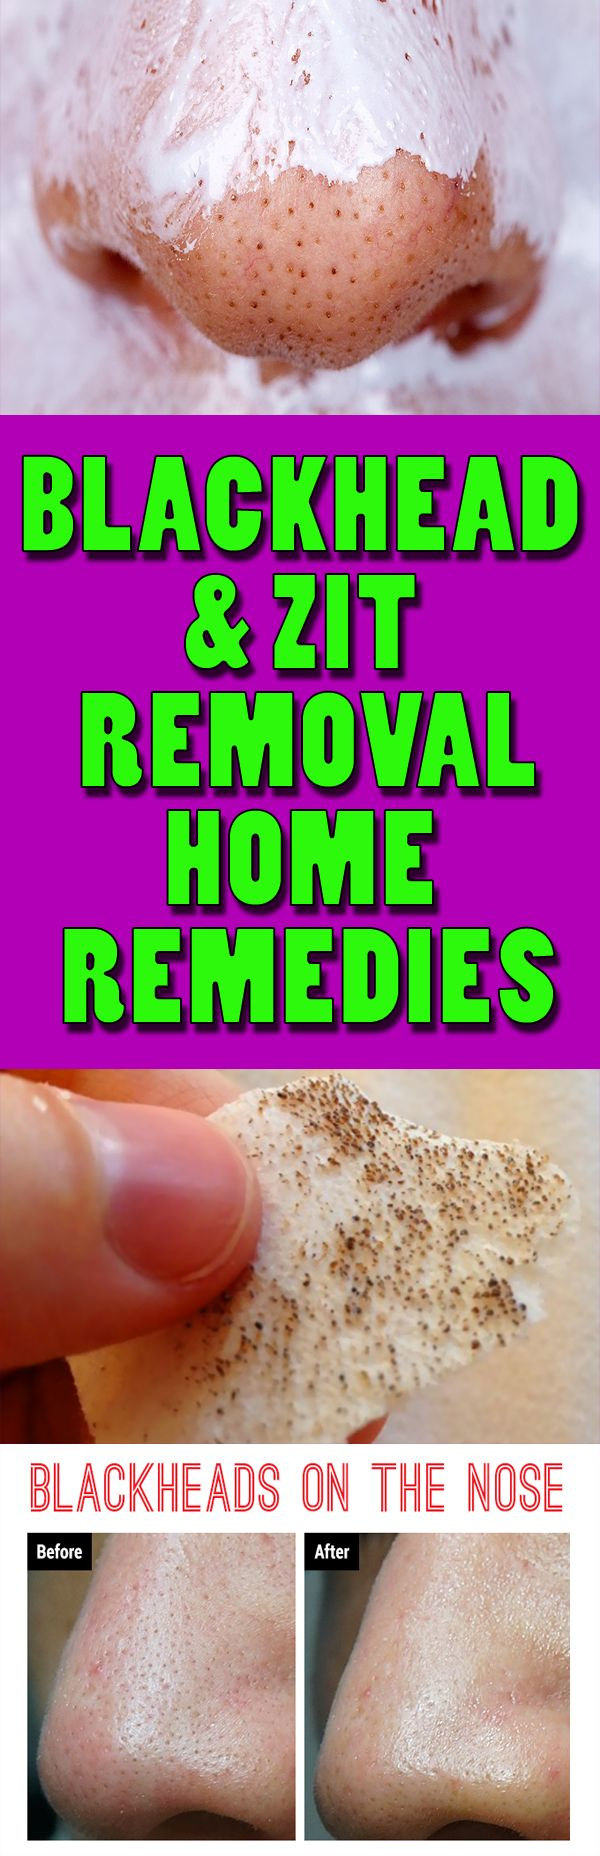 Two ingredients are all you need to get rid of blackheads and zit's forever  #blackheads #clean #HOWTO #homeremedies